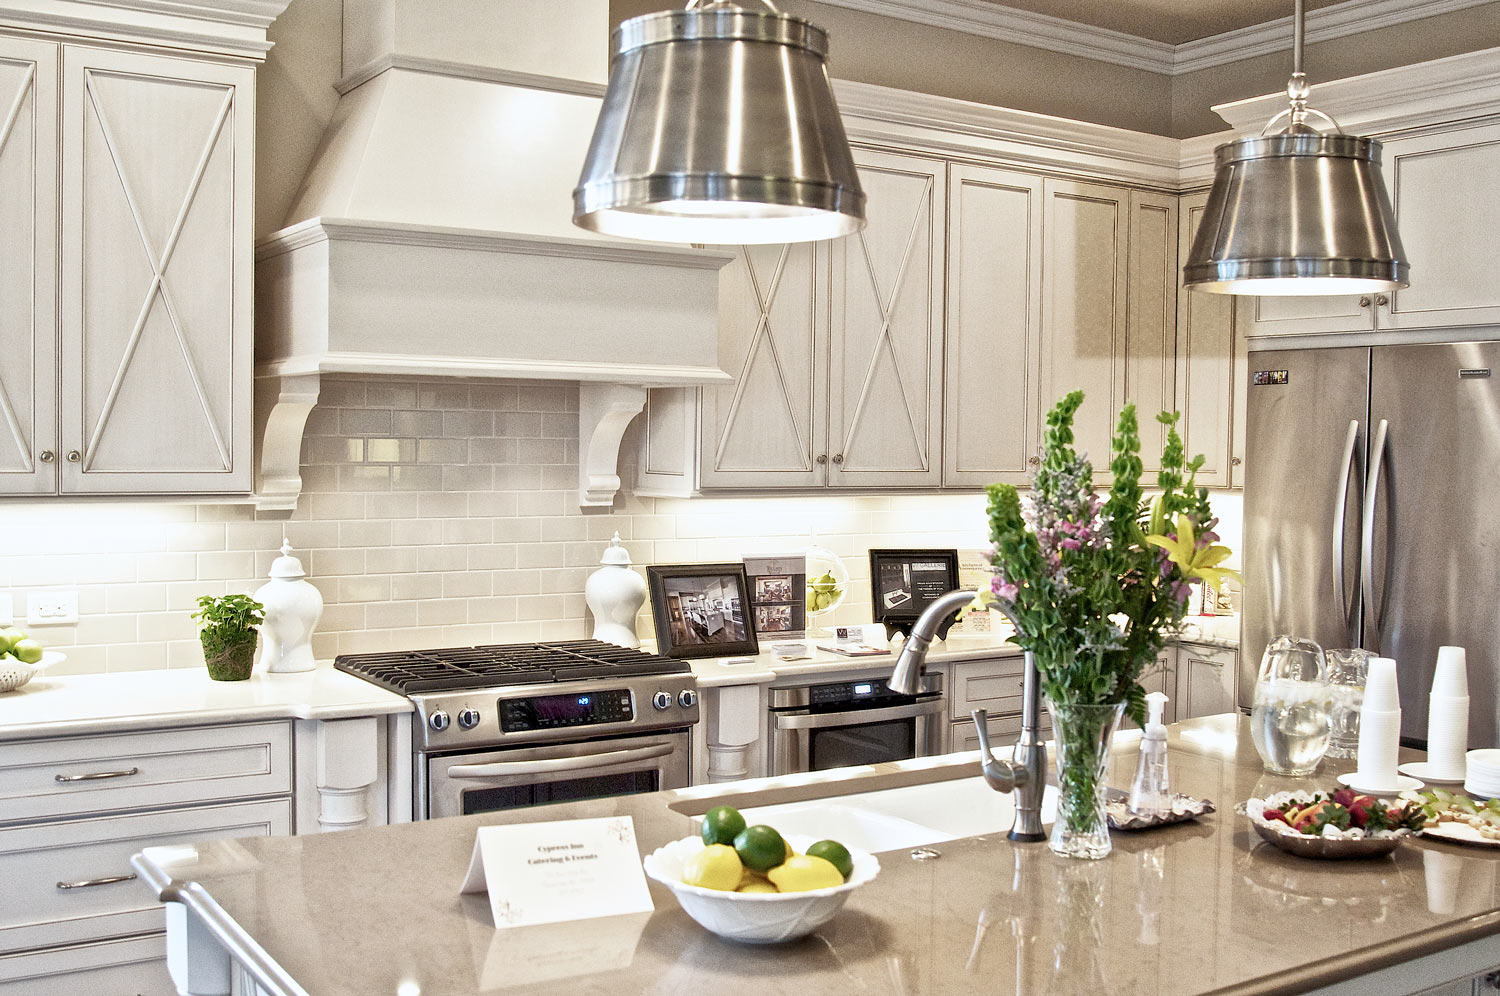 This kitchen was featured as a showcase home in the Kitchens of Consequence fundraiser for WUAL/Alabama Public Radio